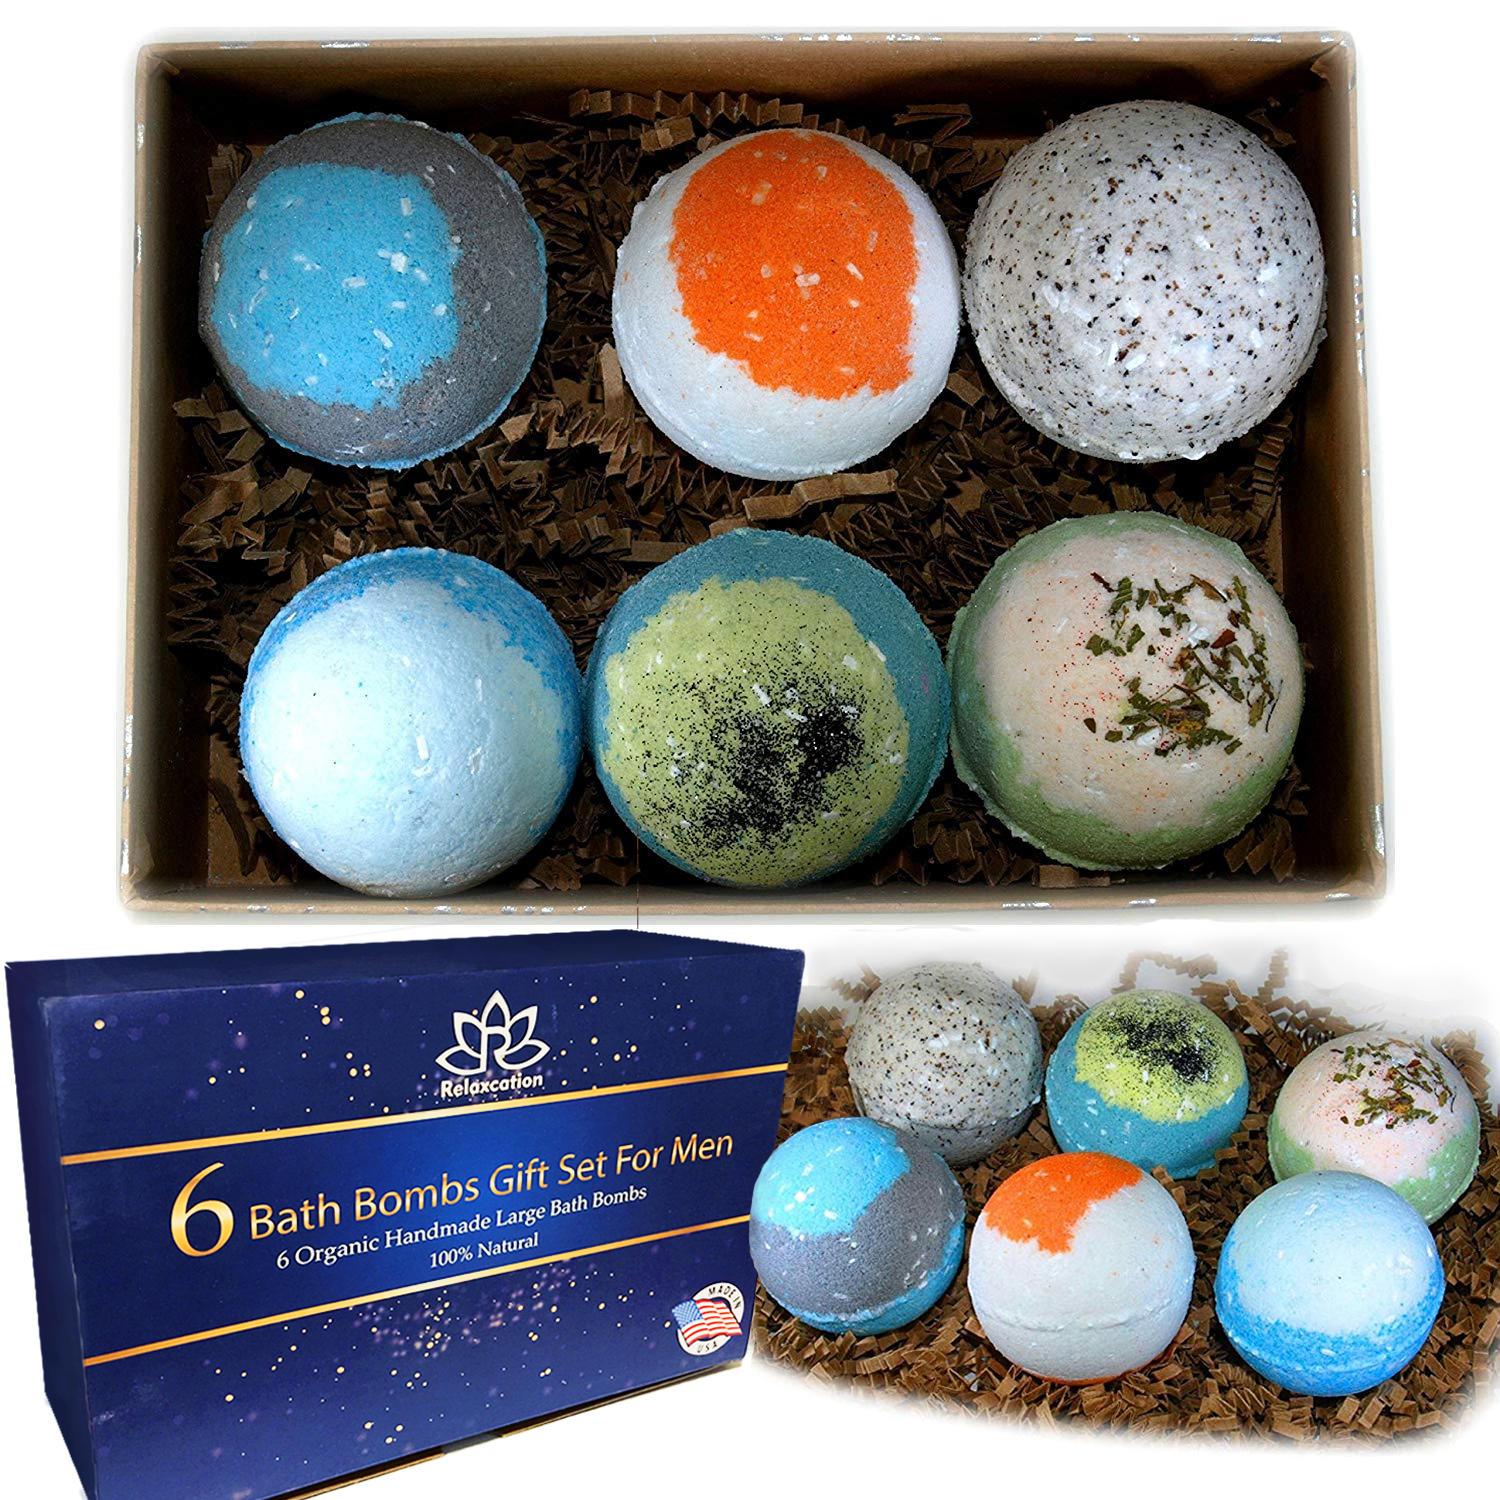 6 All Natural Bath Bombs Gift Set For Men 5 5 Oz Each Relaxcation